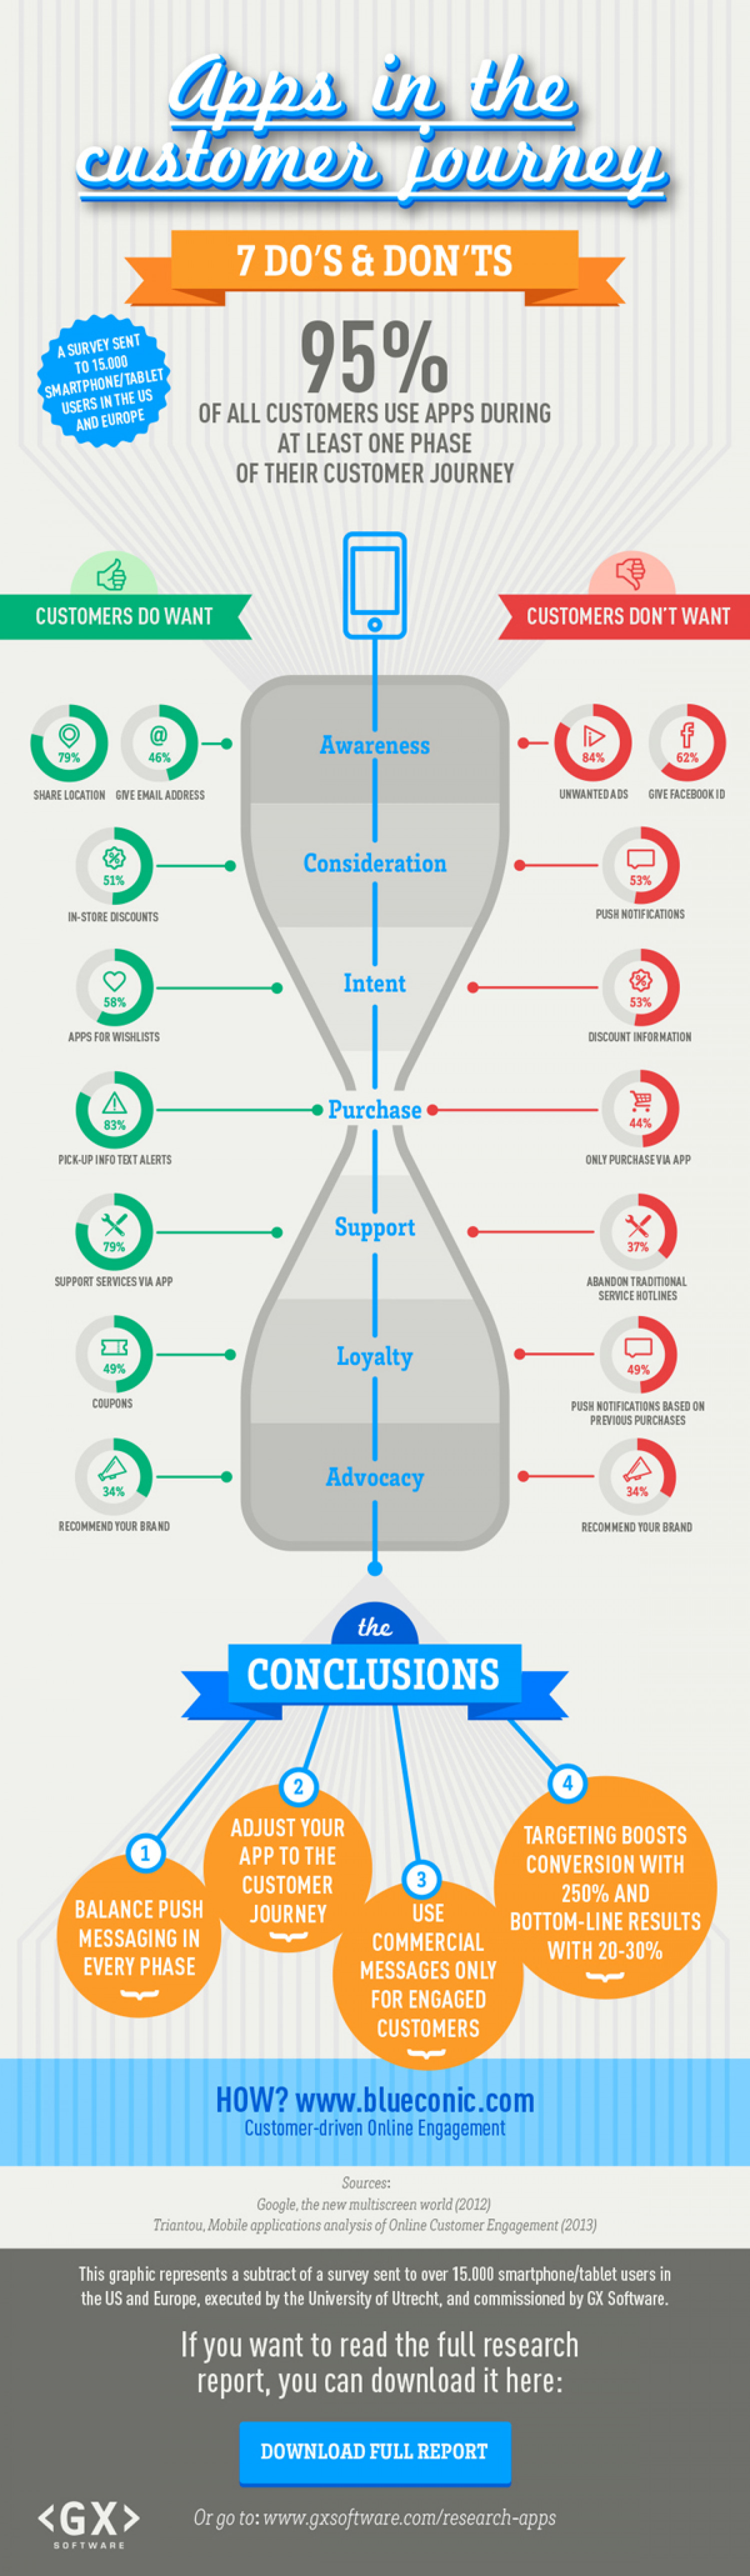 Apps in the Customer Journey Infographic